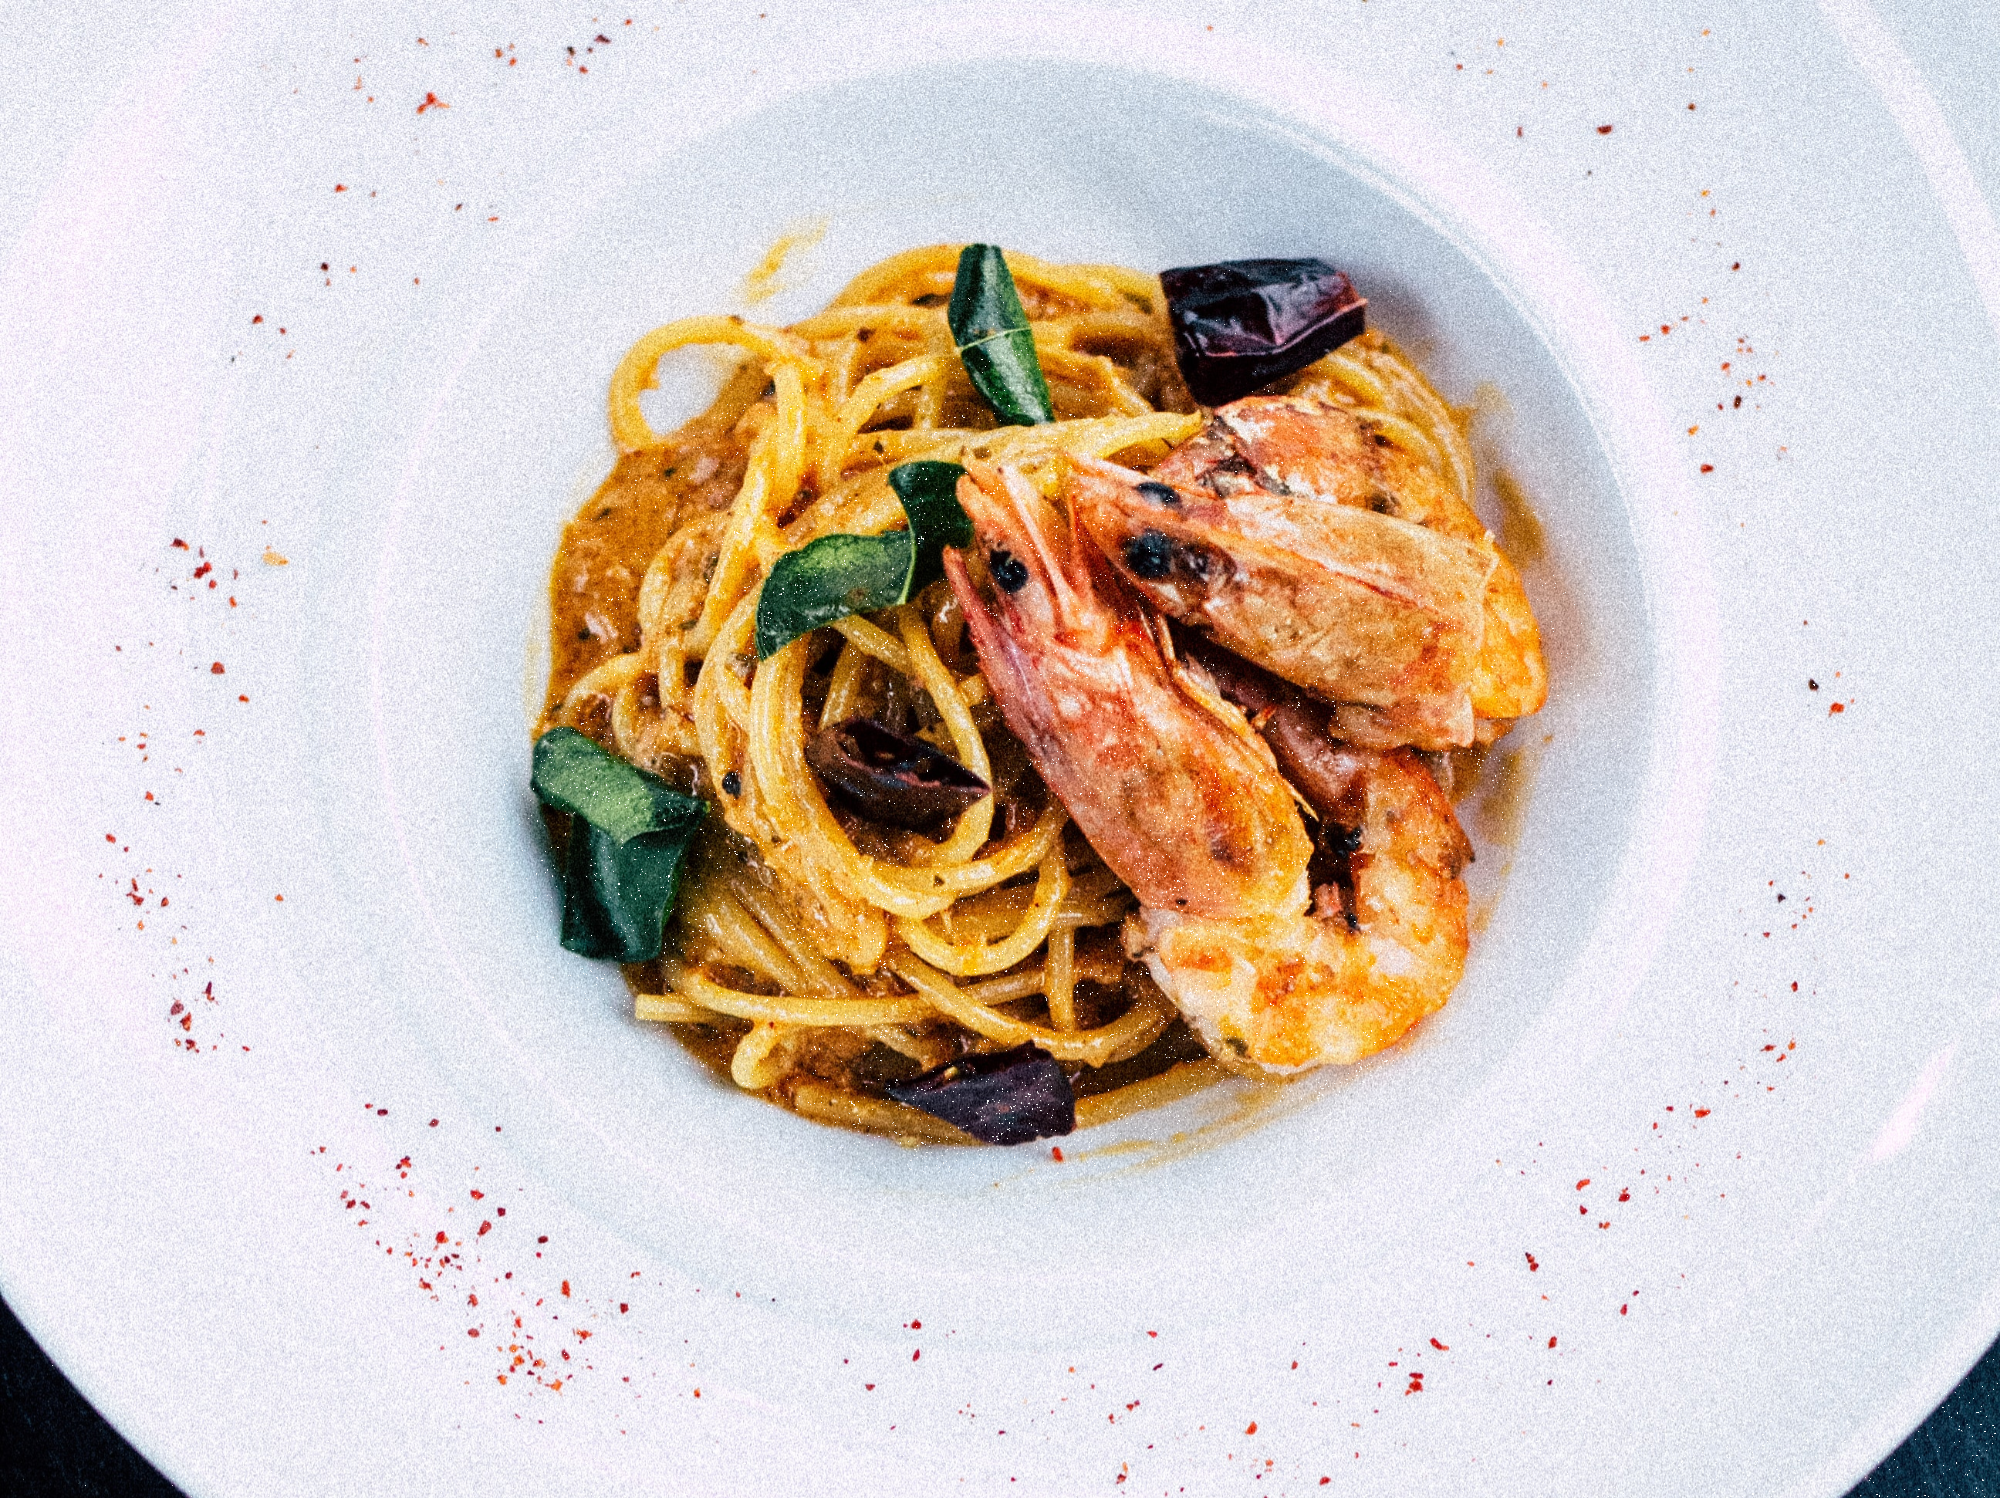 Italian Cuisine - SOLD OUT